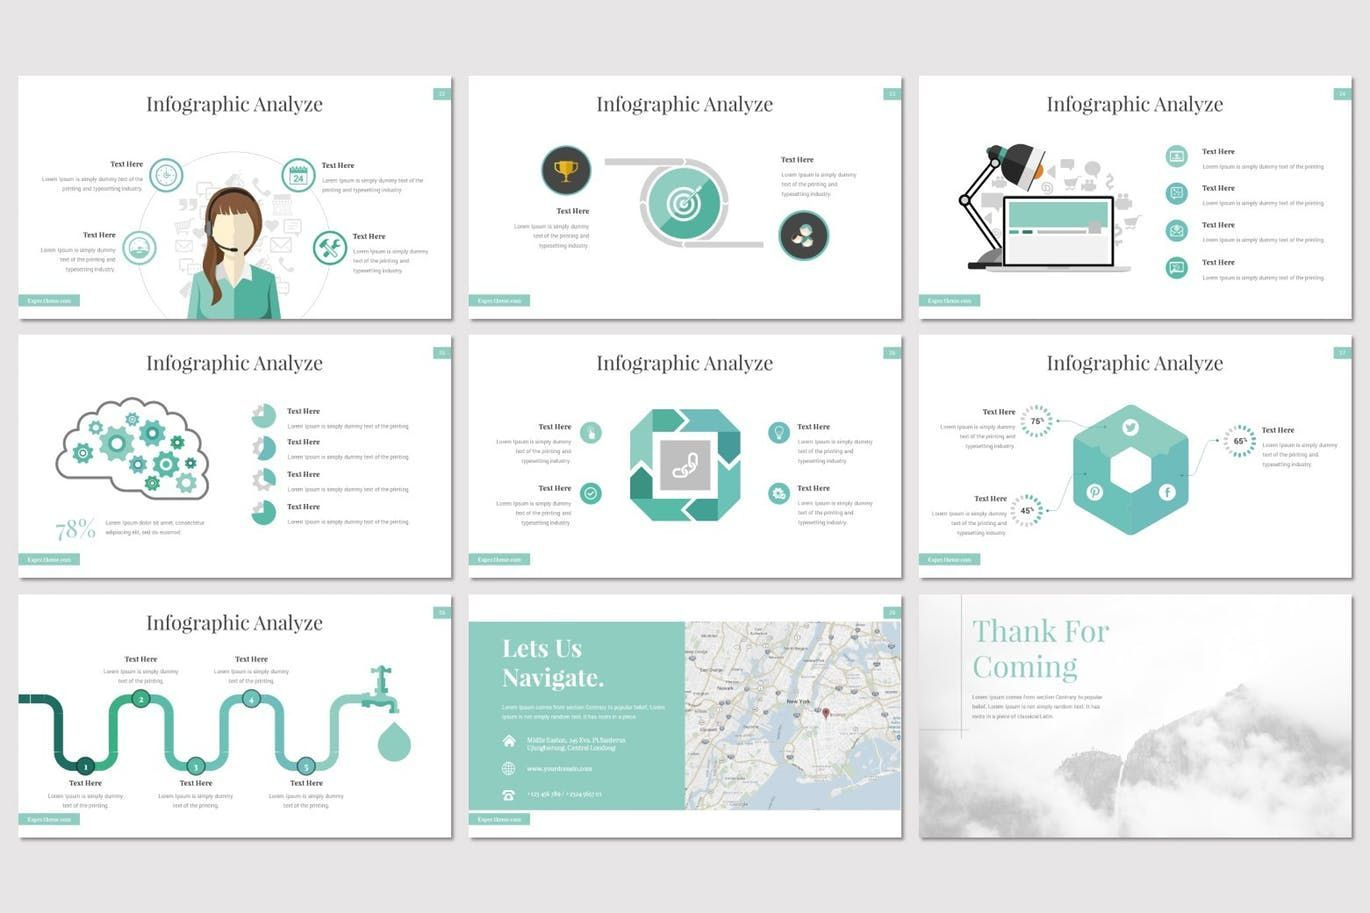 Expec - PowerPoint Template, Slide 5, 07820, Presentation Templates — PoweredTemplate.com